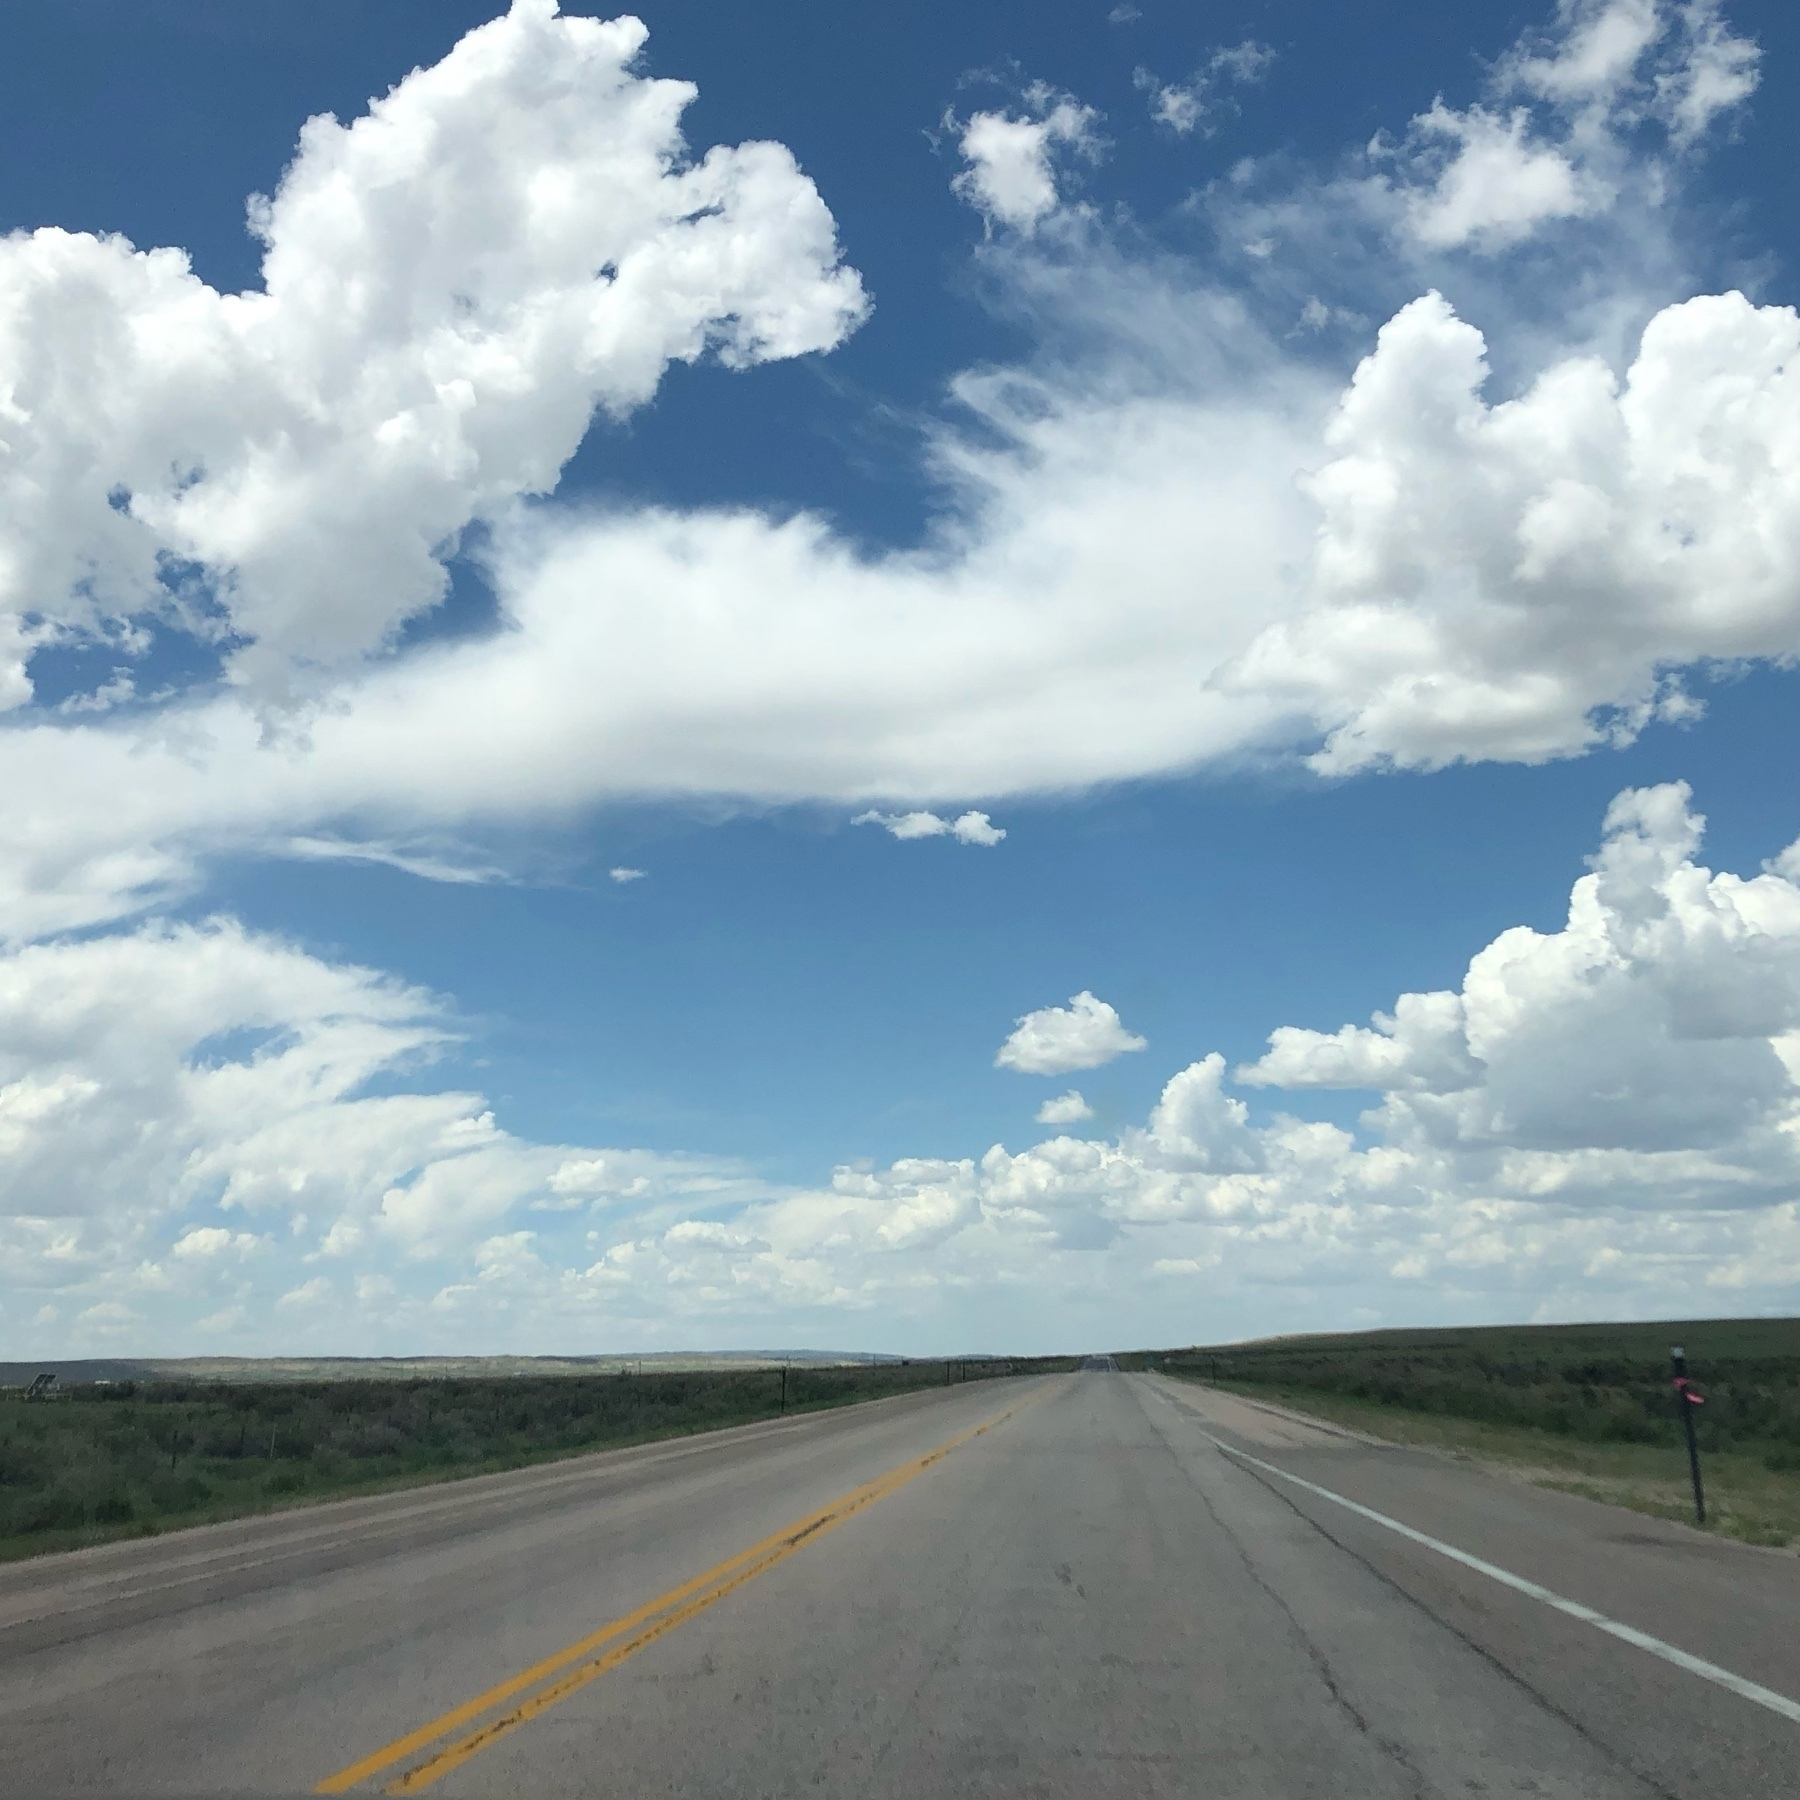 A flat wide freeway with a big blue sky above. Puffy white clouds make the sky look even bigger!